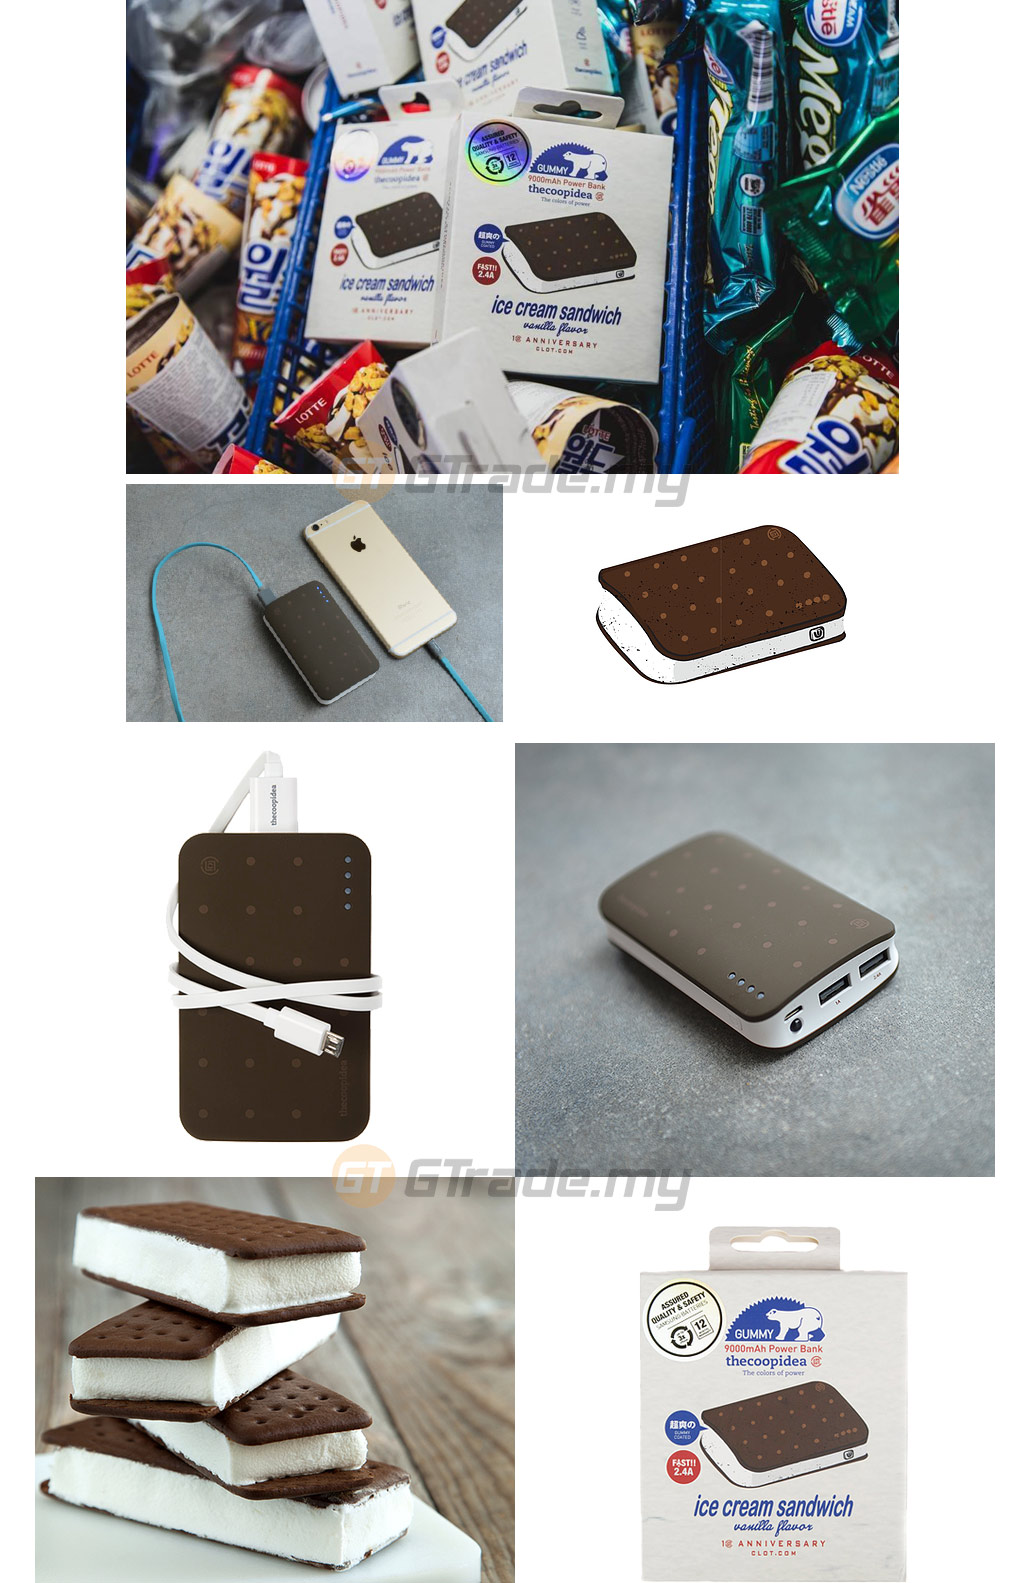 thecoopidea-ice-cream-sandwish-9000-mah-powerbank-p